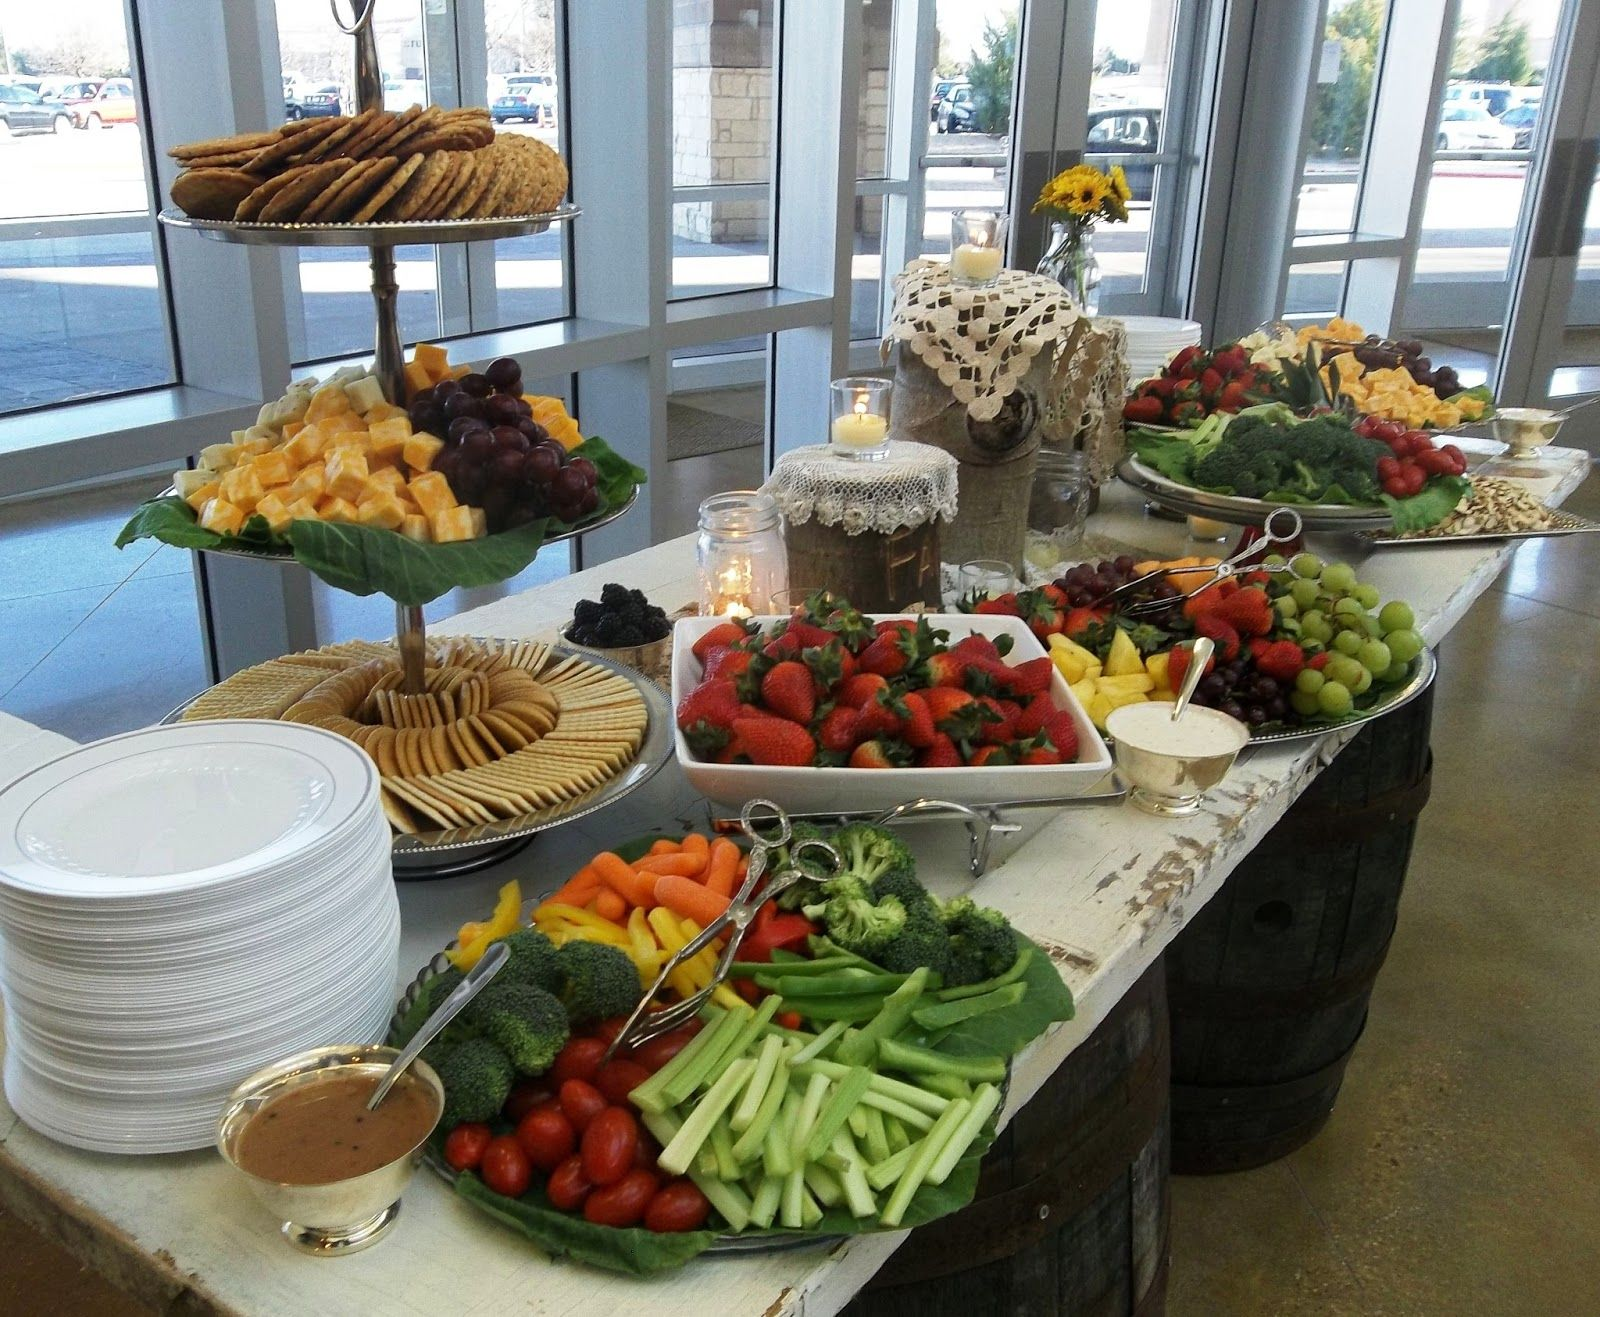 Image Result For Wedding Appetizers Fruit And Veggies Wedding